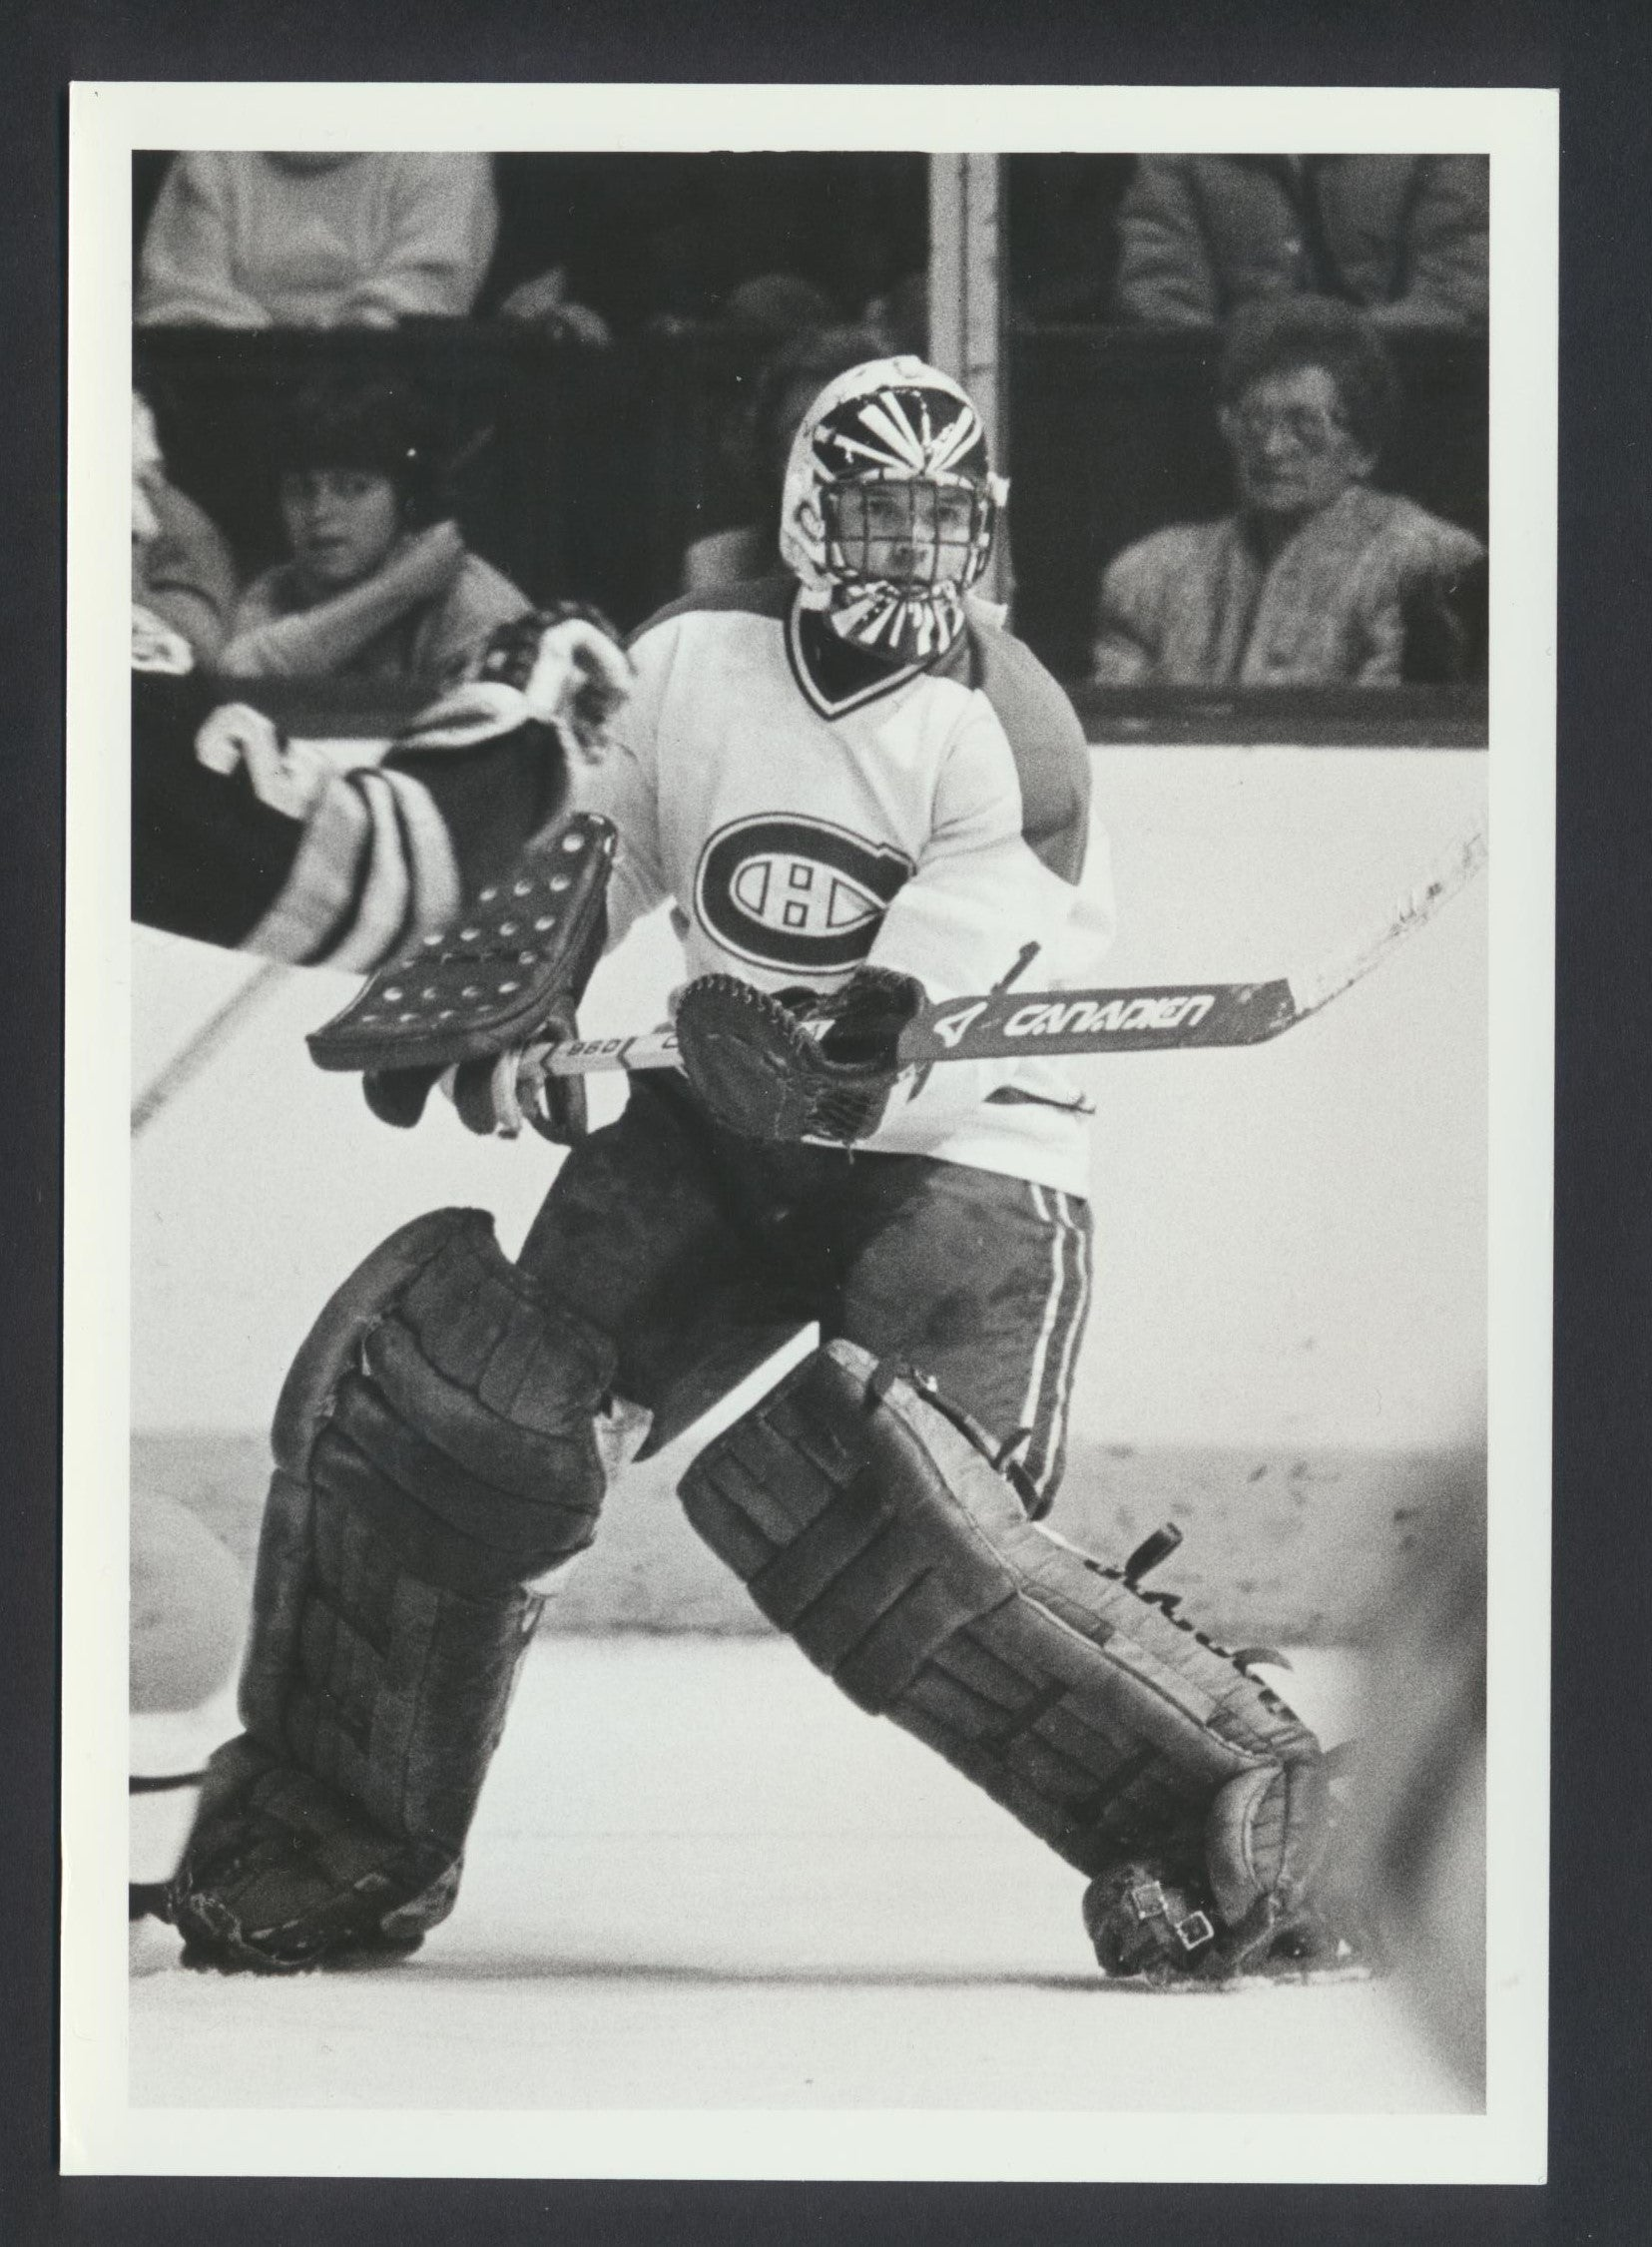 Rick Womsley Montreal Canadiens 1983 NHL Hockey Press Photo -Sporting News